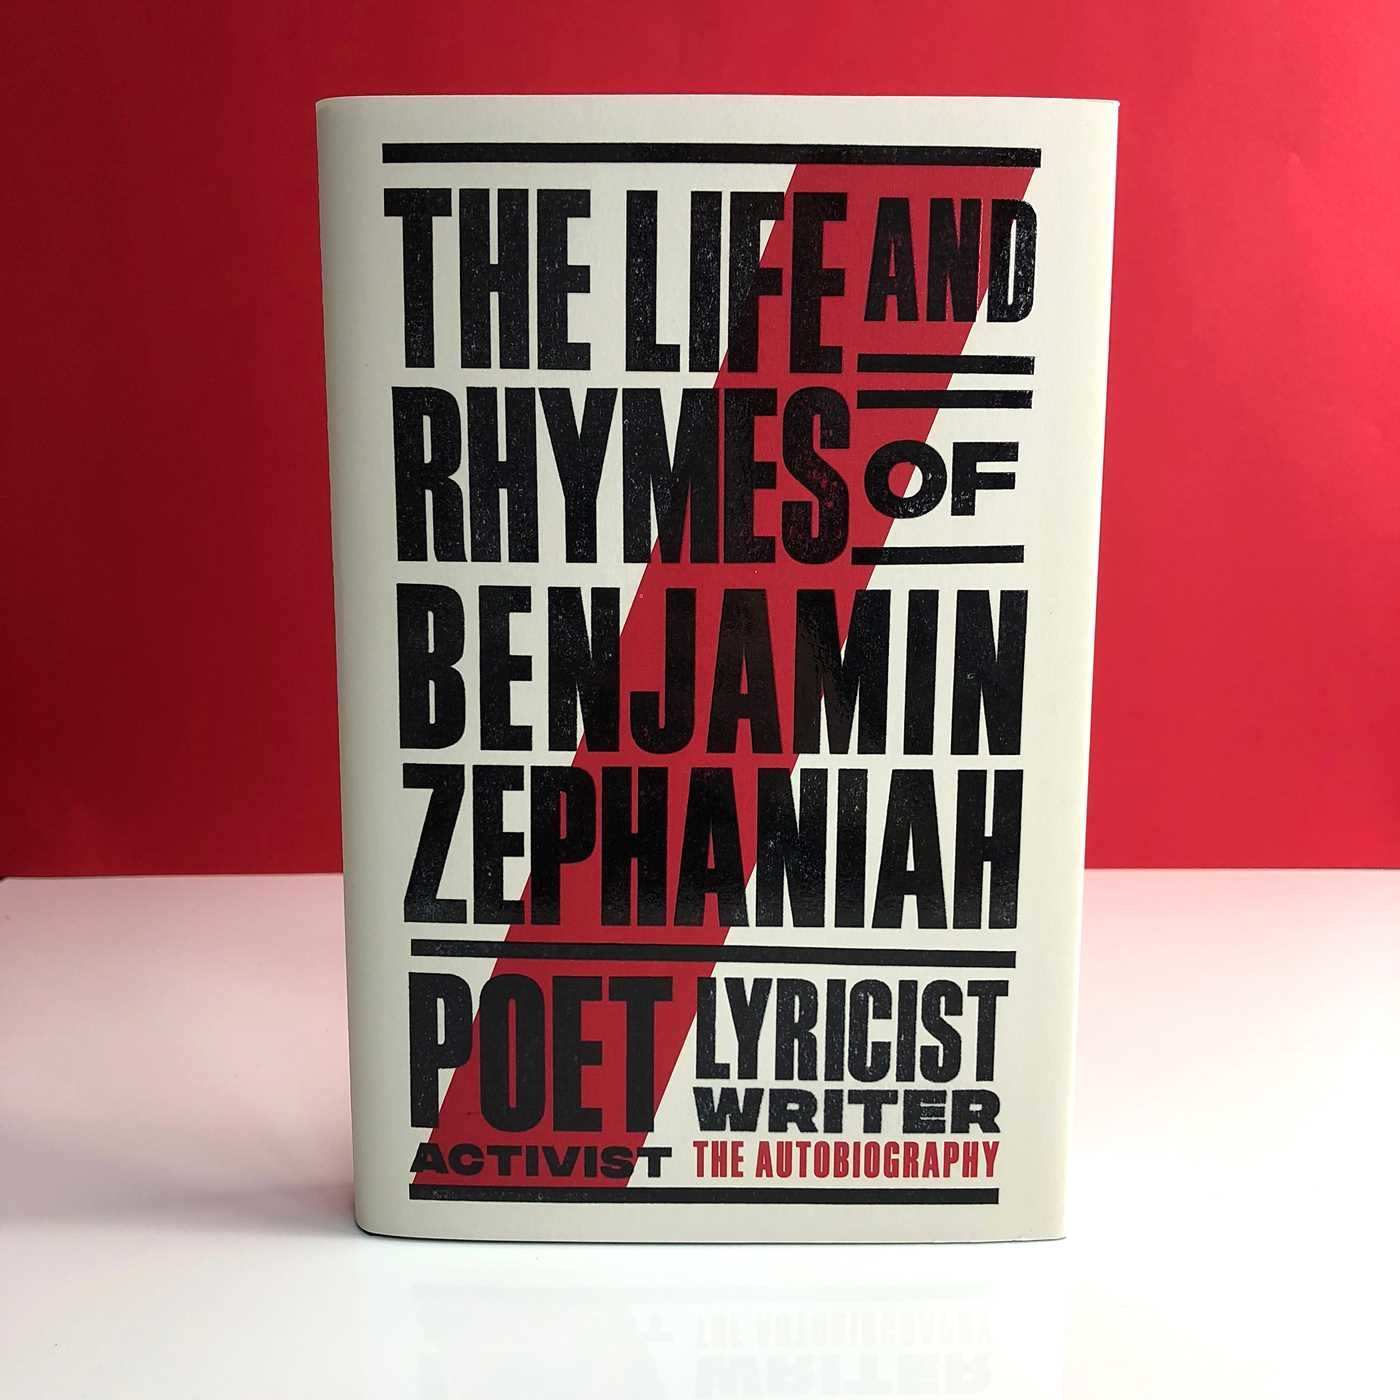 The life and rhymes of benjamin zephaniah 9781471168925.in01